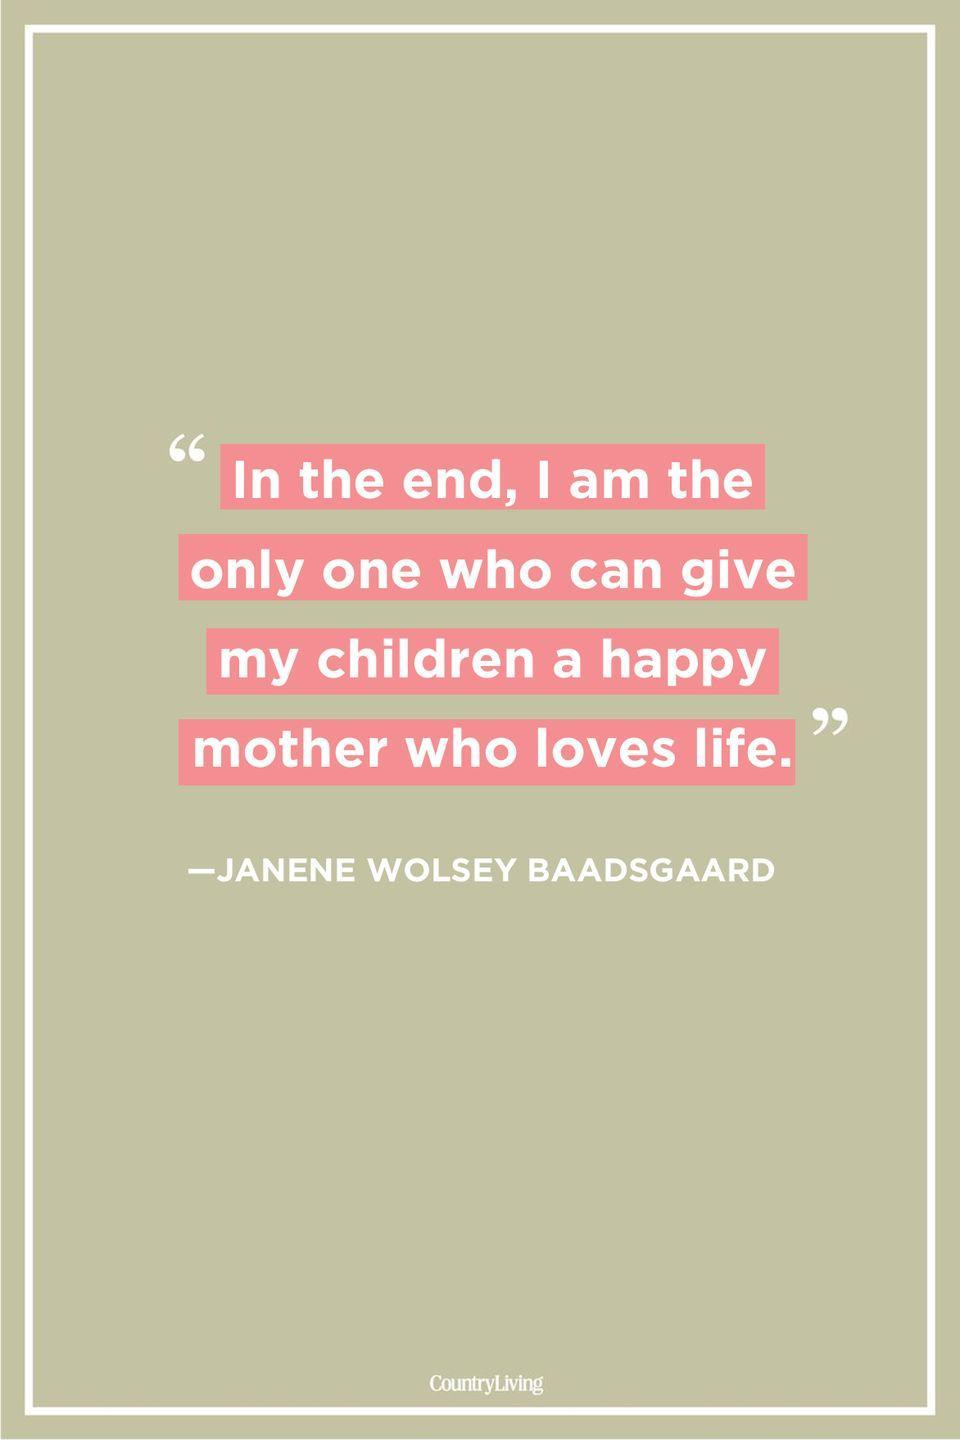 "<p>""In the end, I am the only one who can give my children a happy mother who loves life.""</p>"